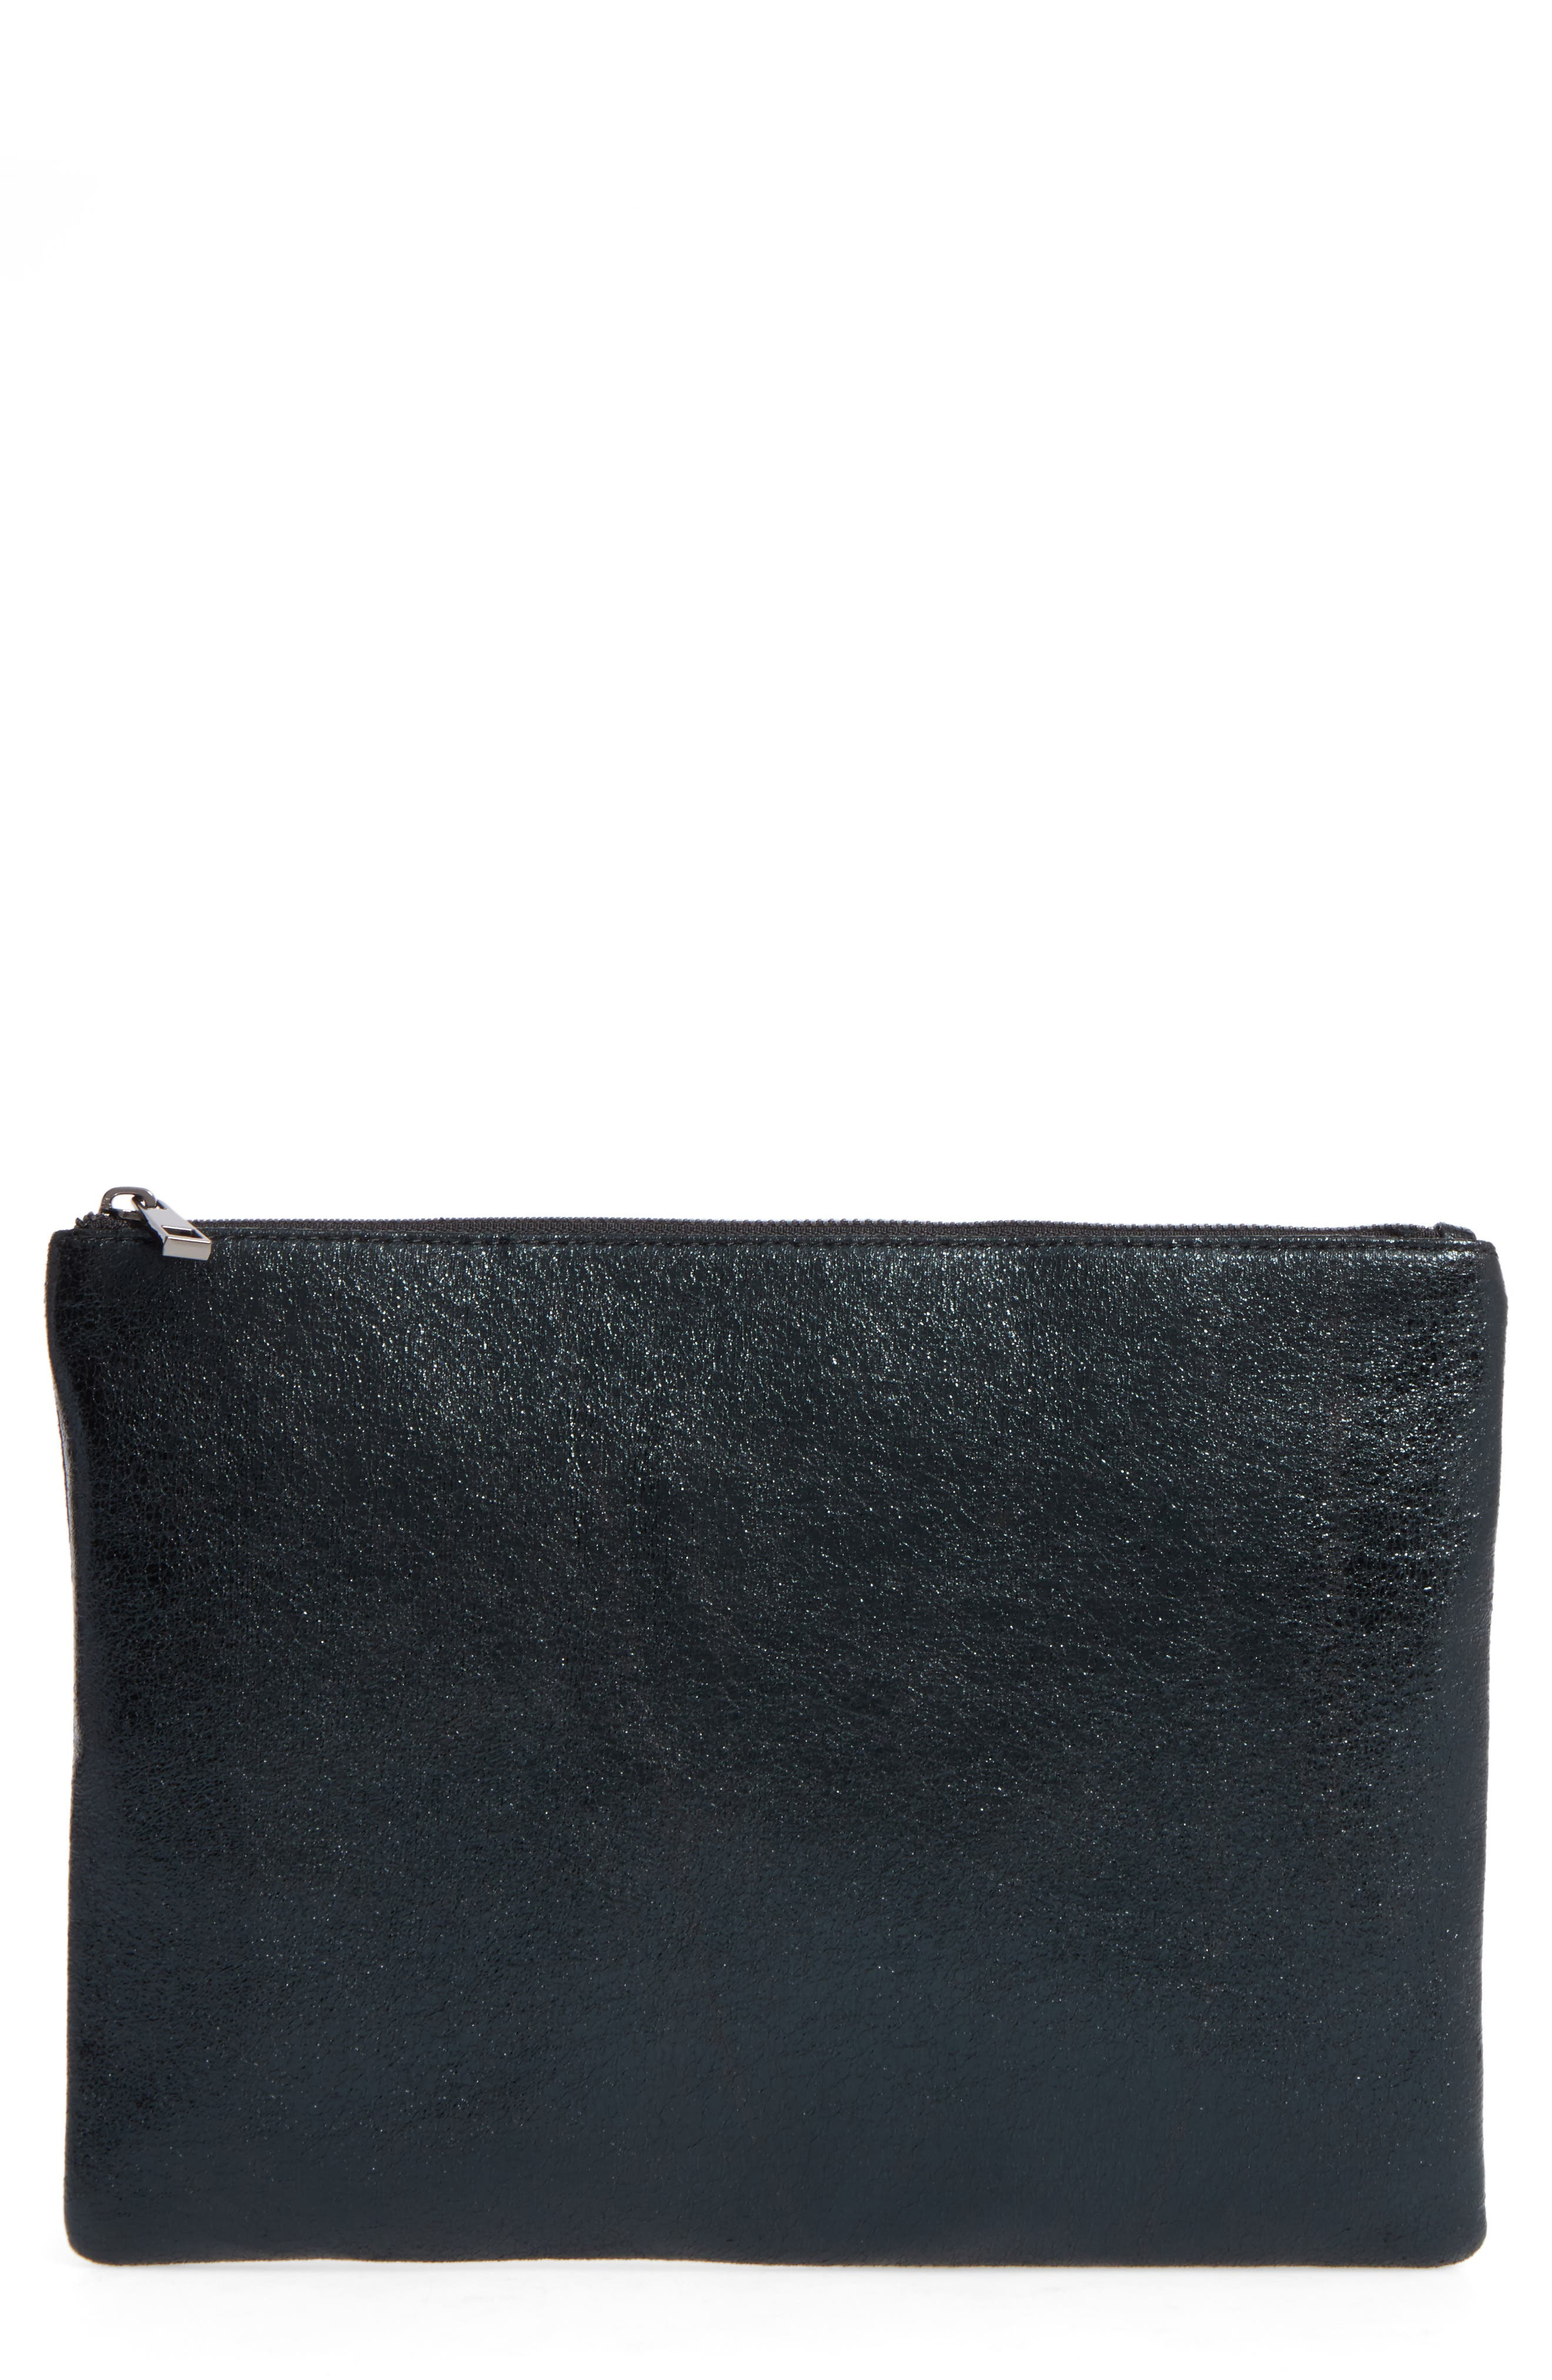 Alternate Image 1 Selected - BP. Faux Leather Large Zip Pouch